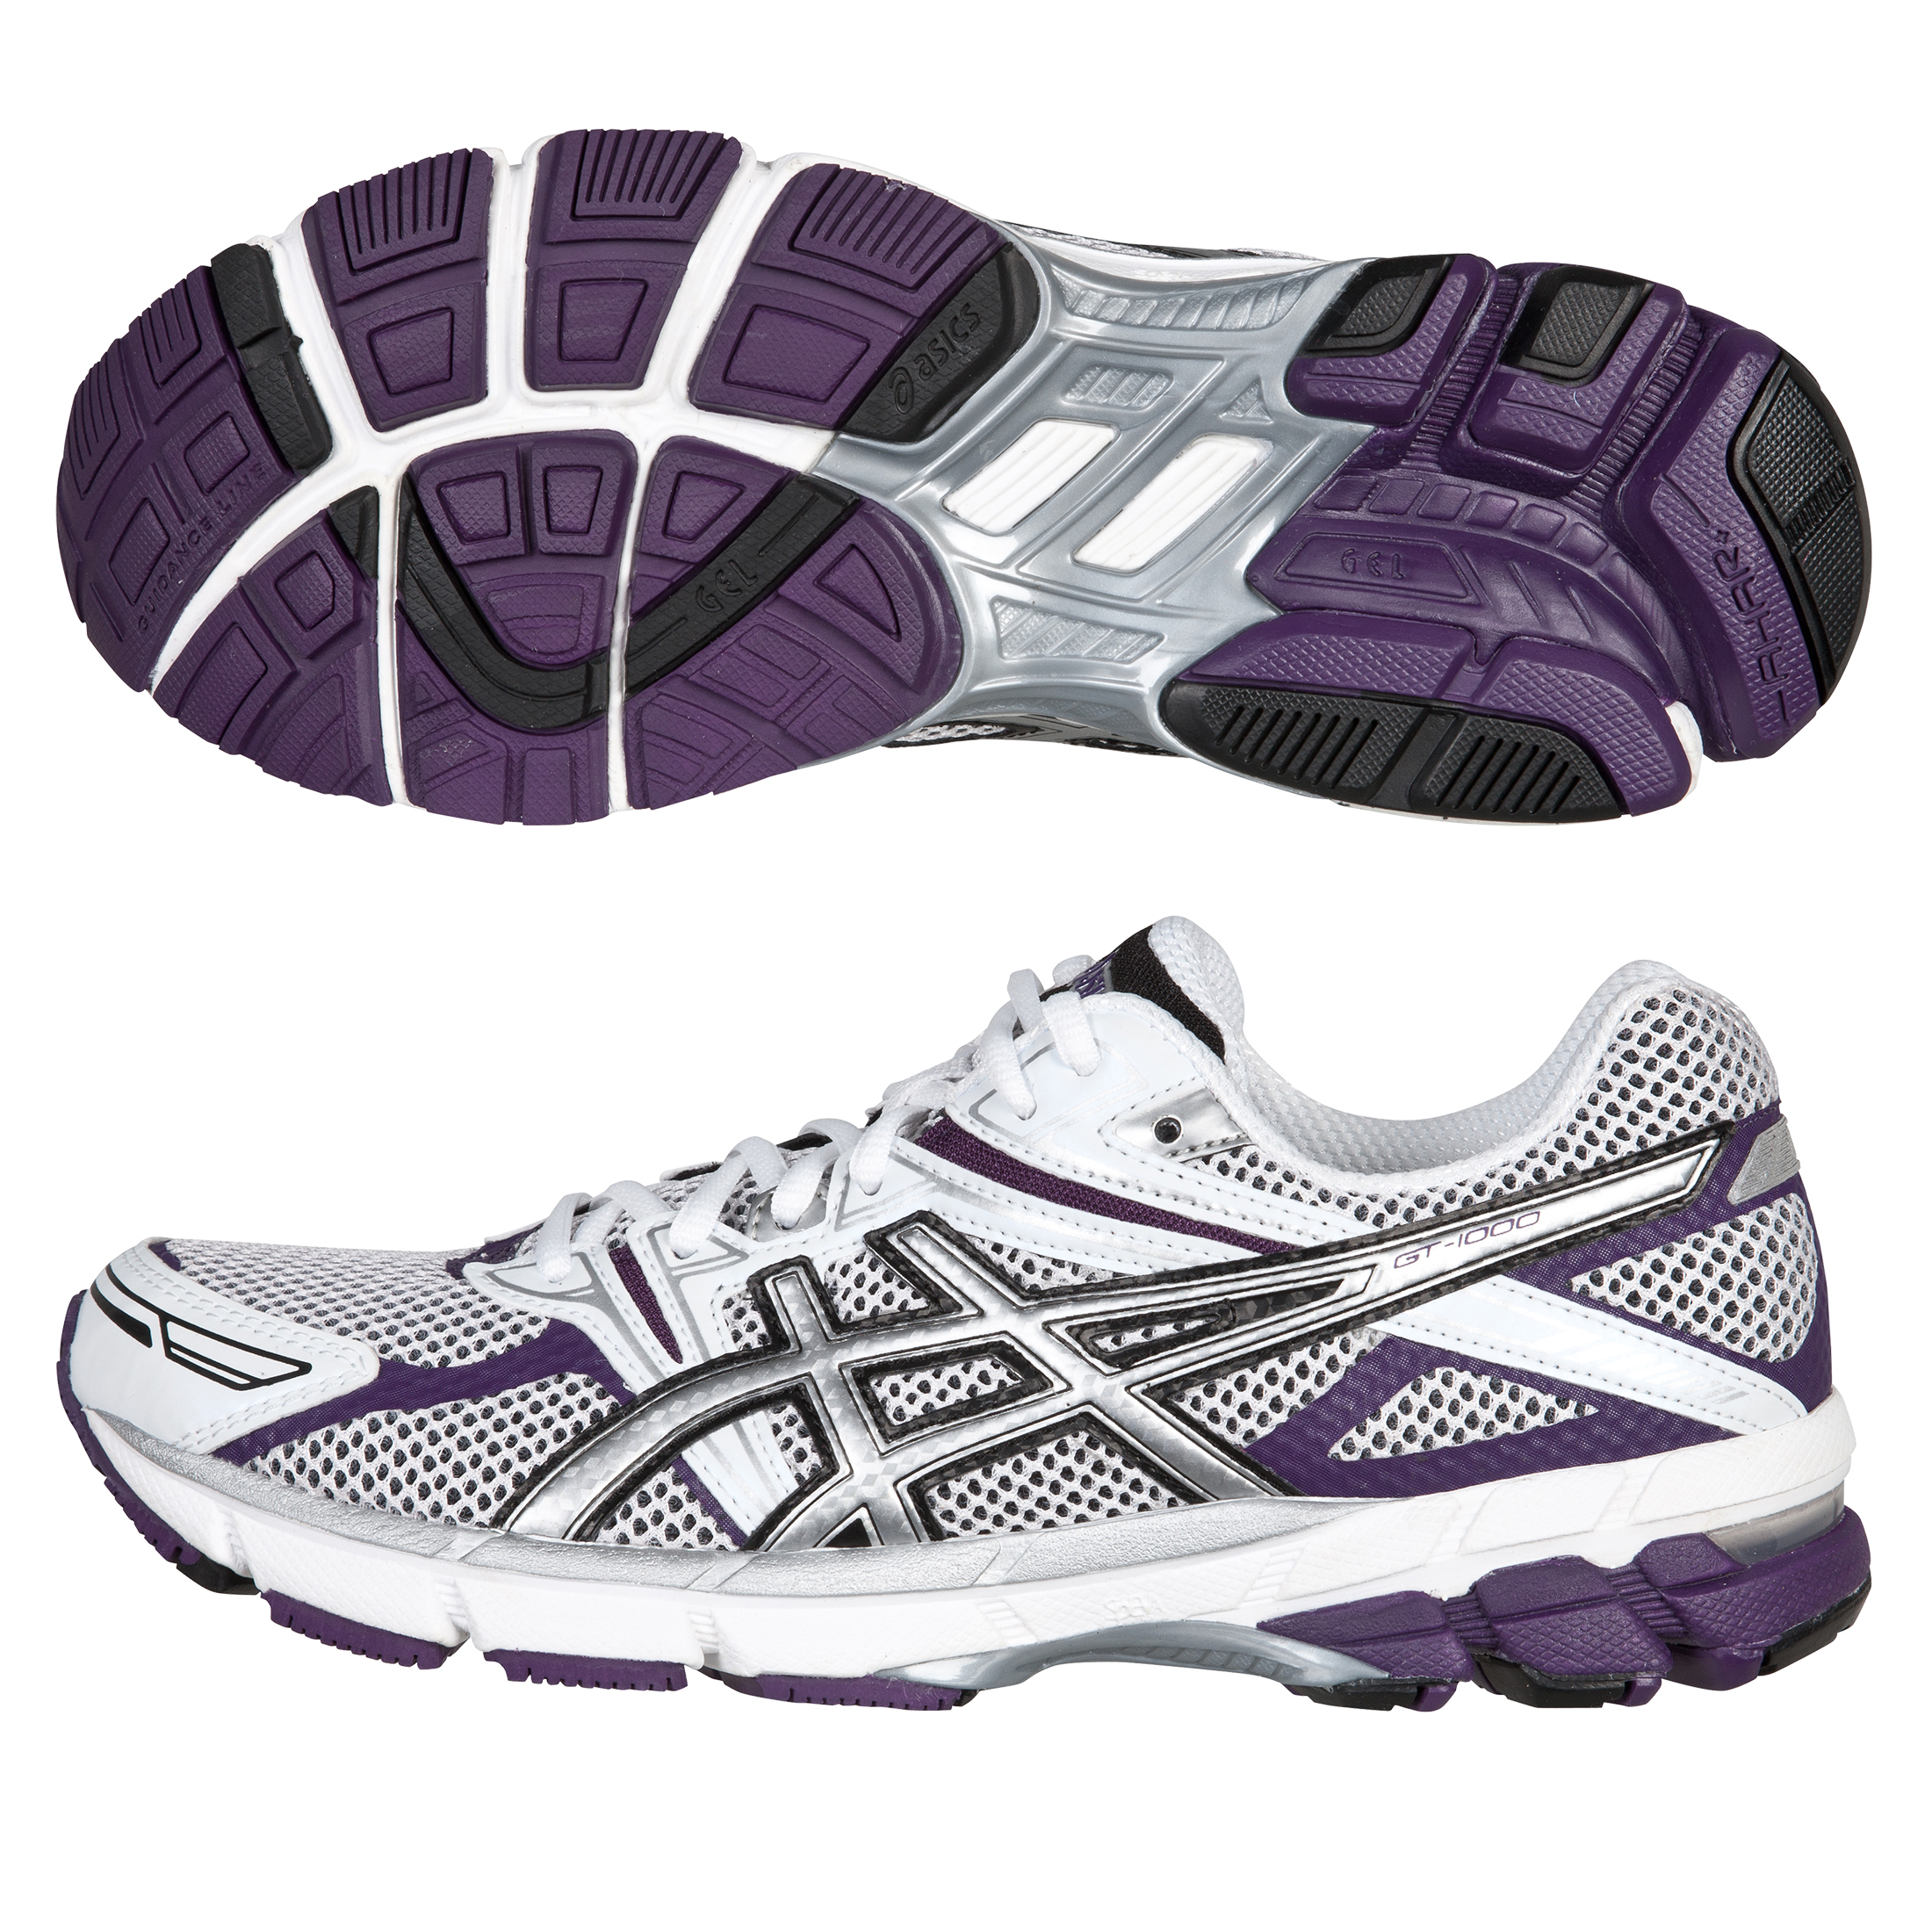 Asics Gt-1000 Trainer - White/Silver/Purple - Womens